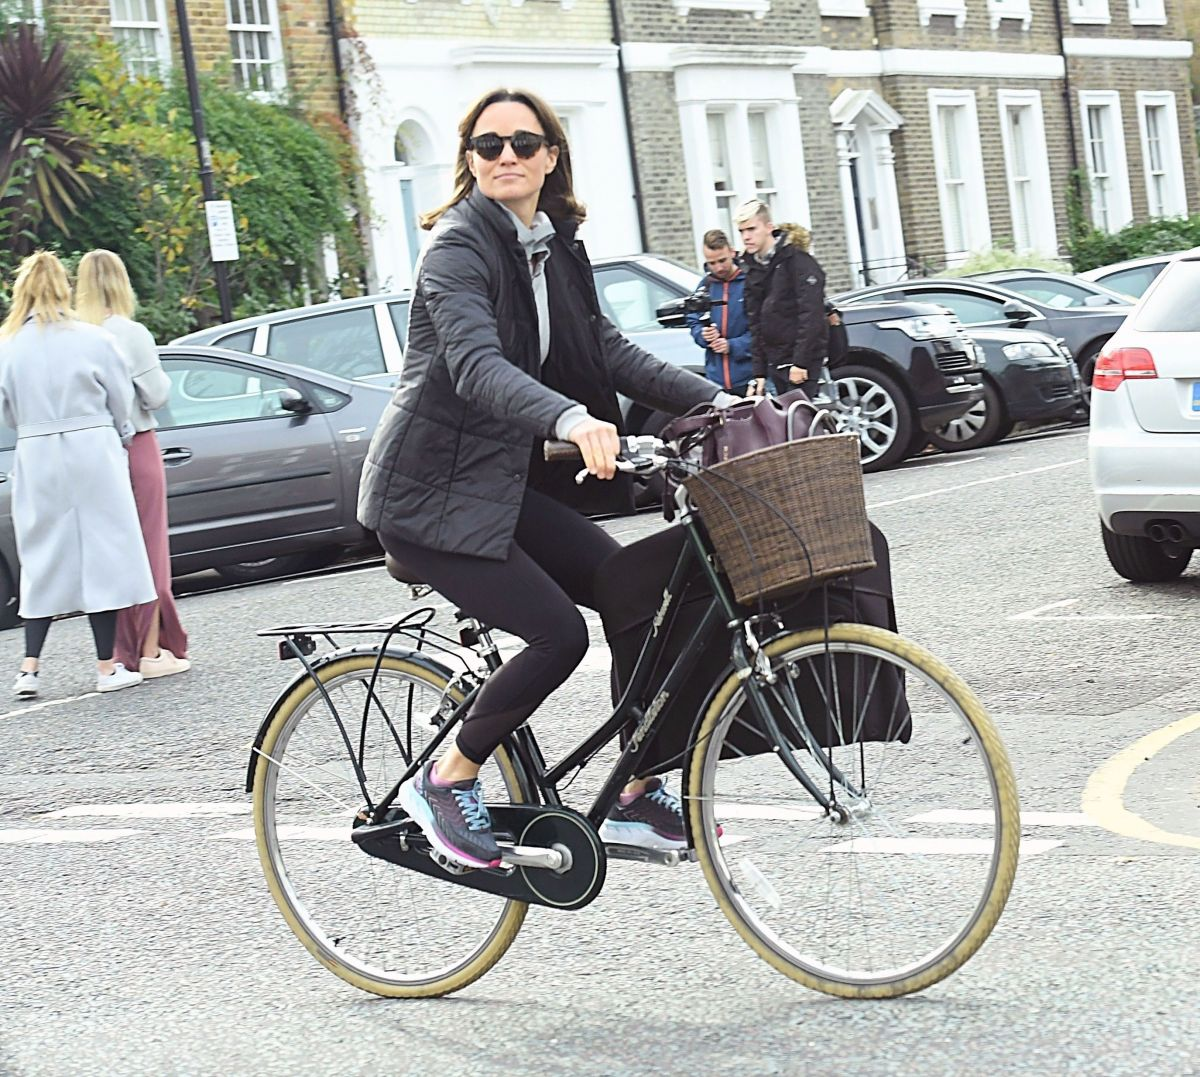 pippa-middleton-out-riding-a-bicycle-in-london-11-09-2017-3.jpg